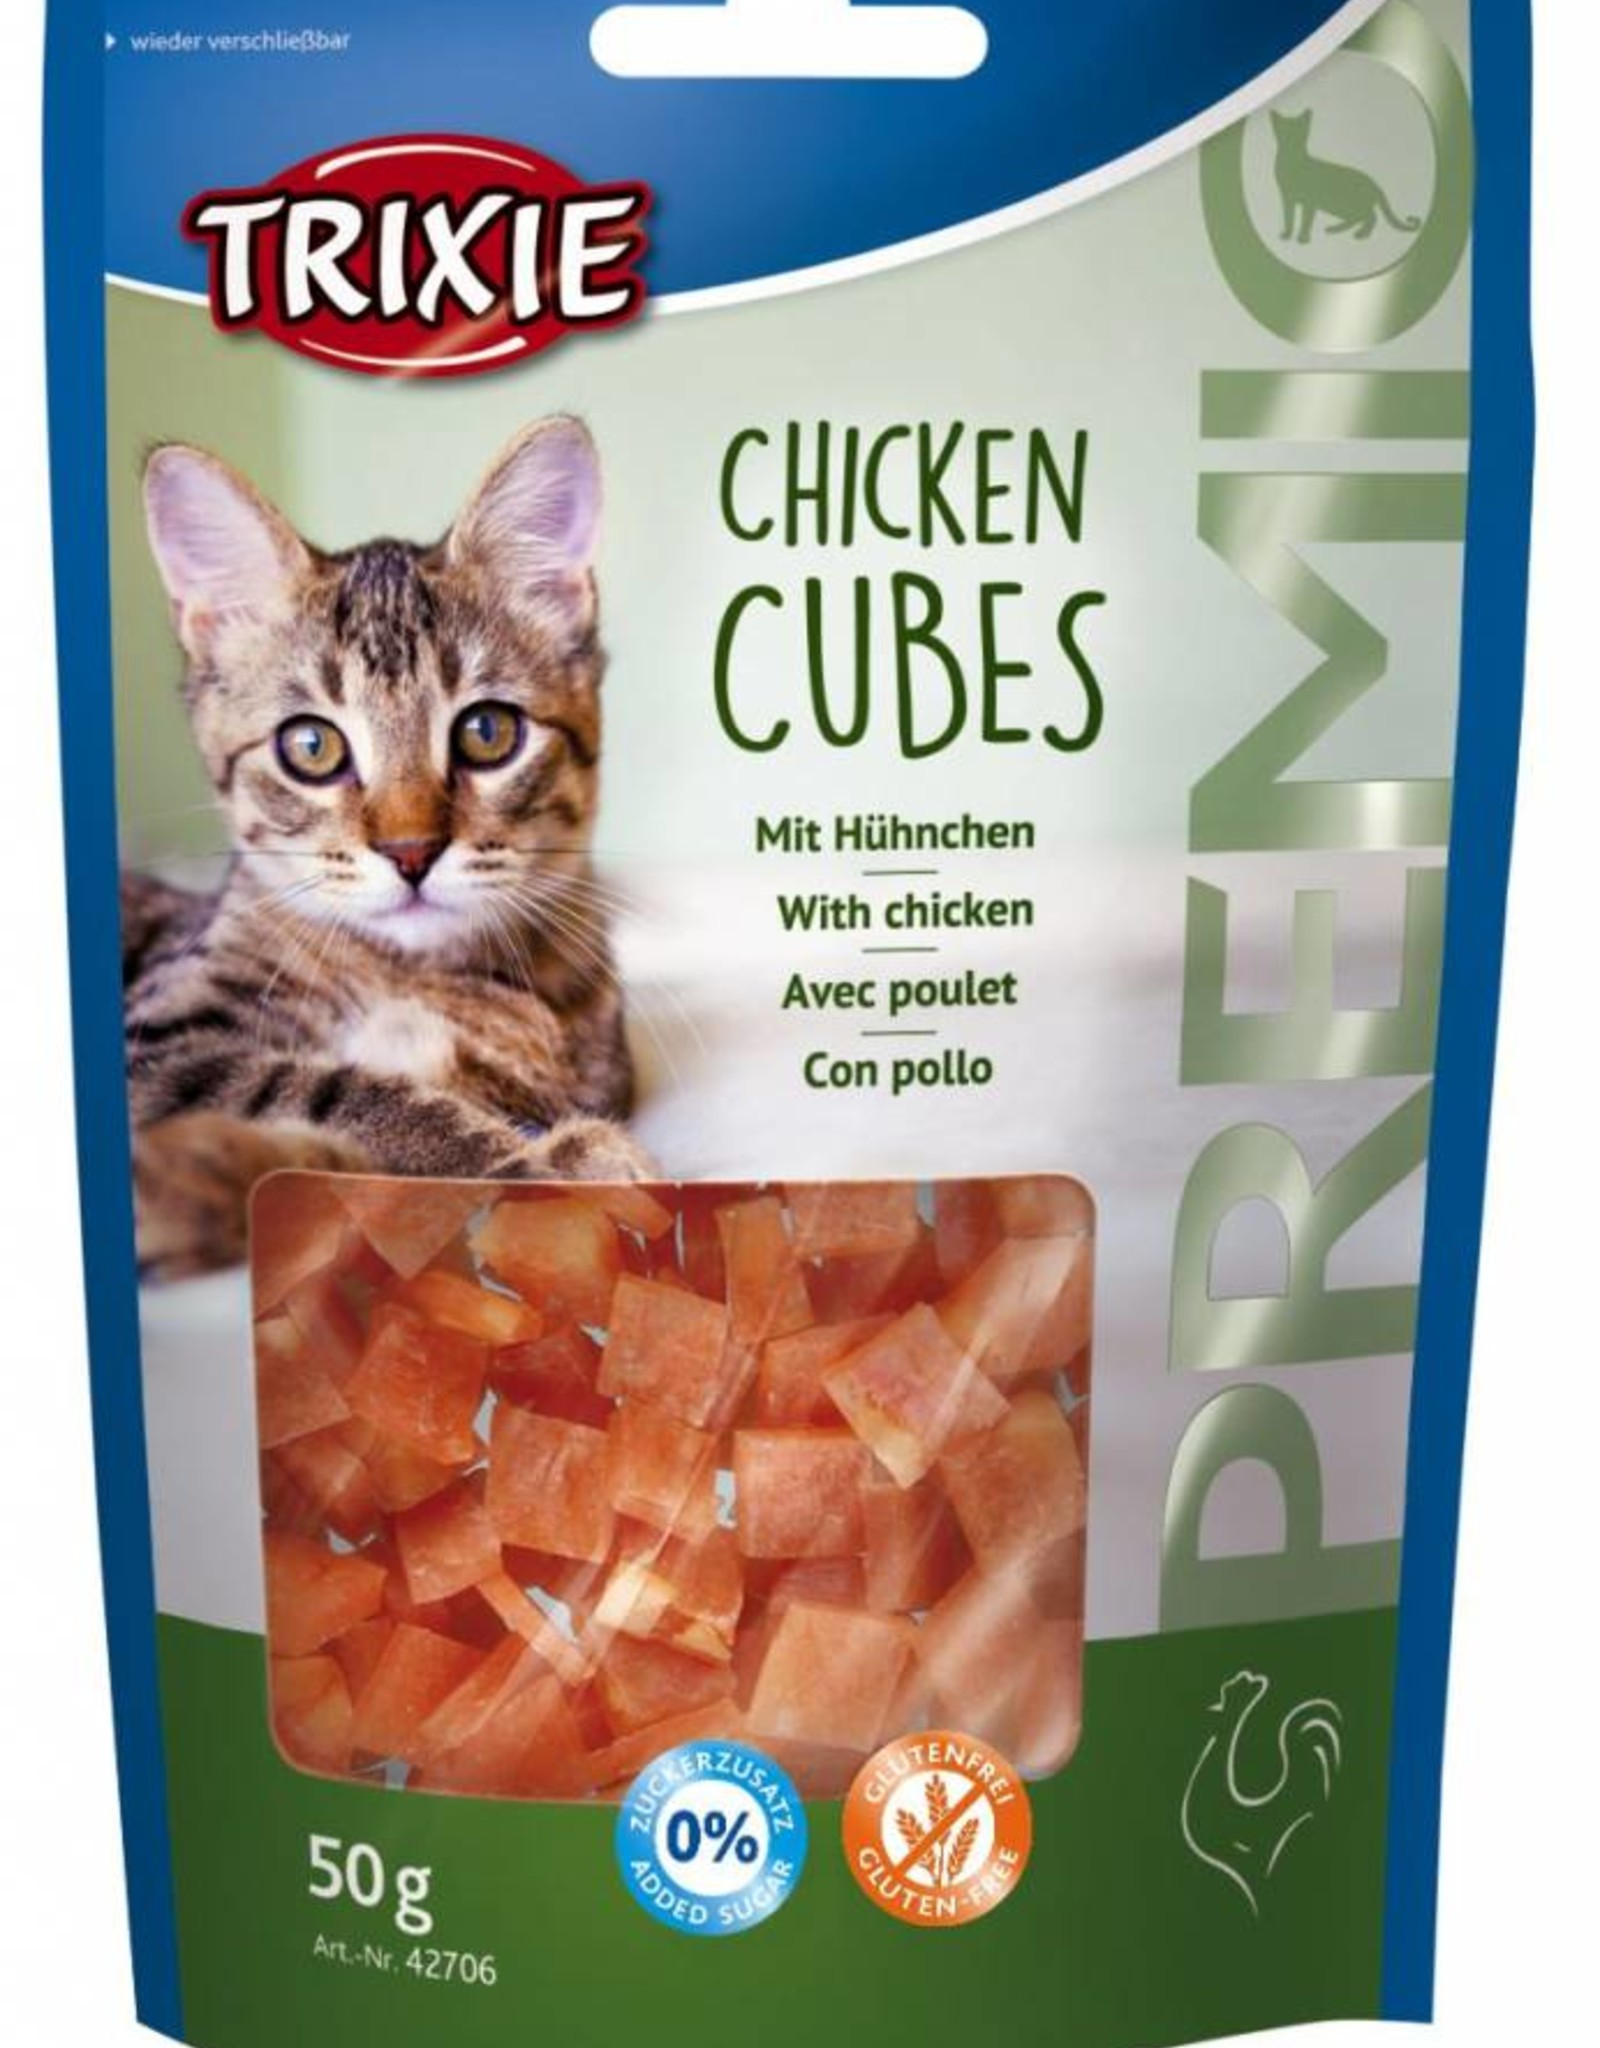 Trixie Chicken Cubes Cat Treats 50g